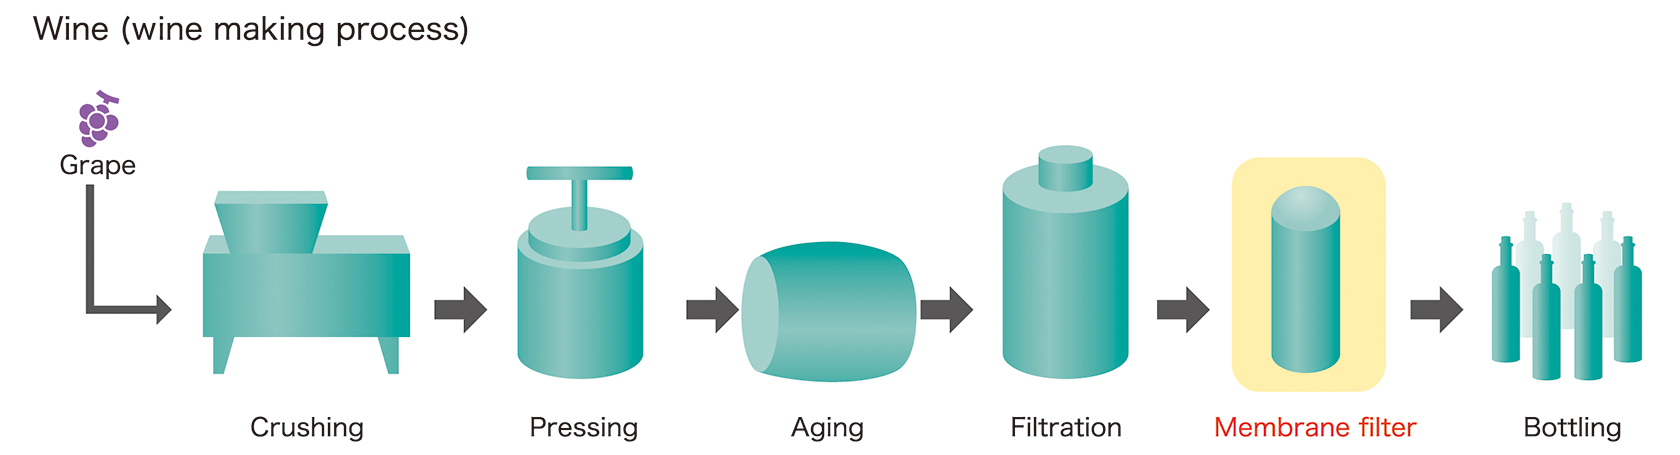 [image] Steps of Wine making process, using membrane filters